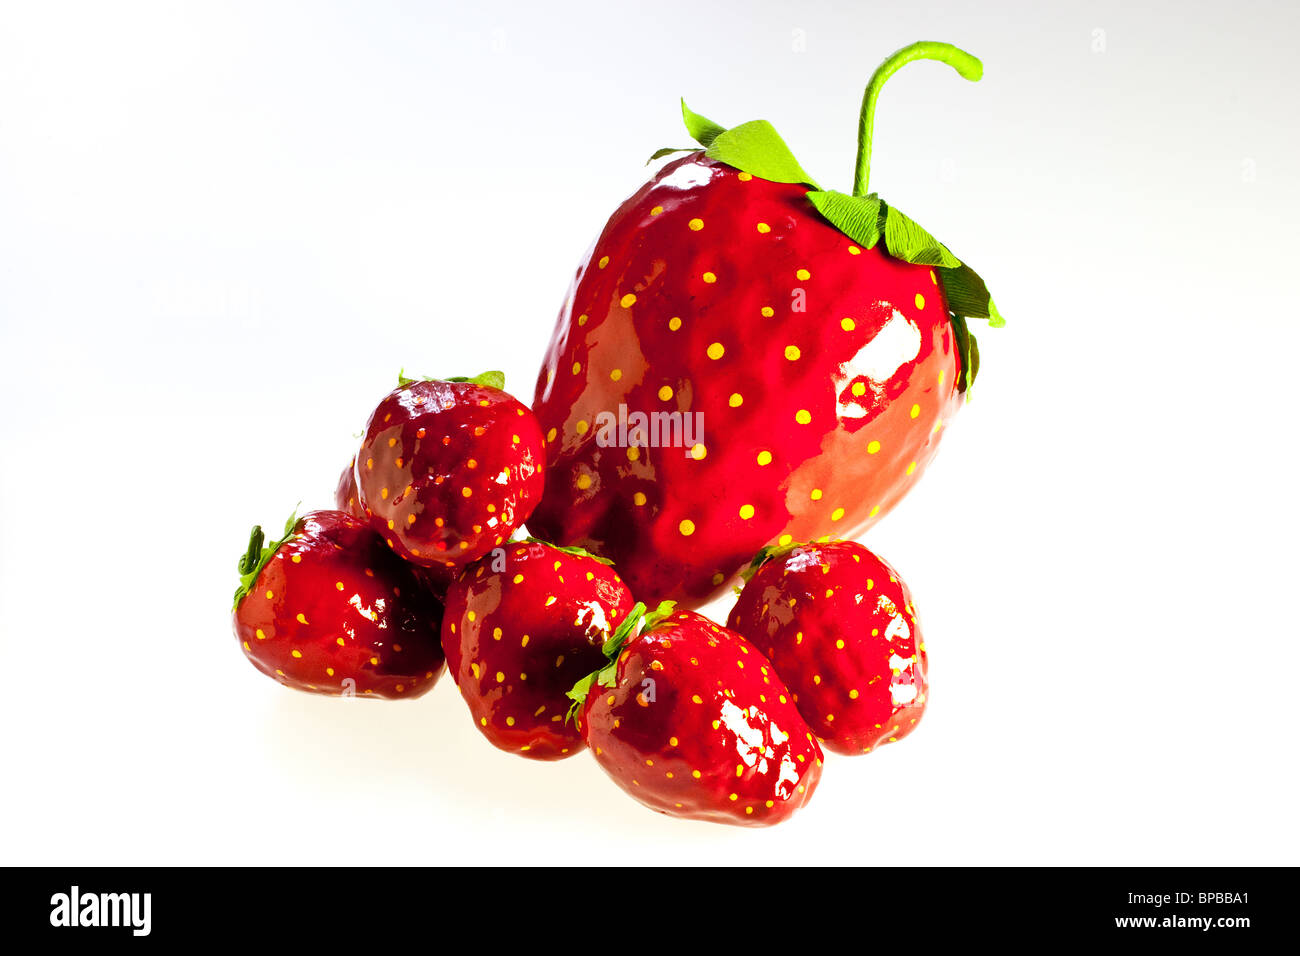 great strawberryes in papier-maché on white bottom - Stock Image